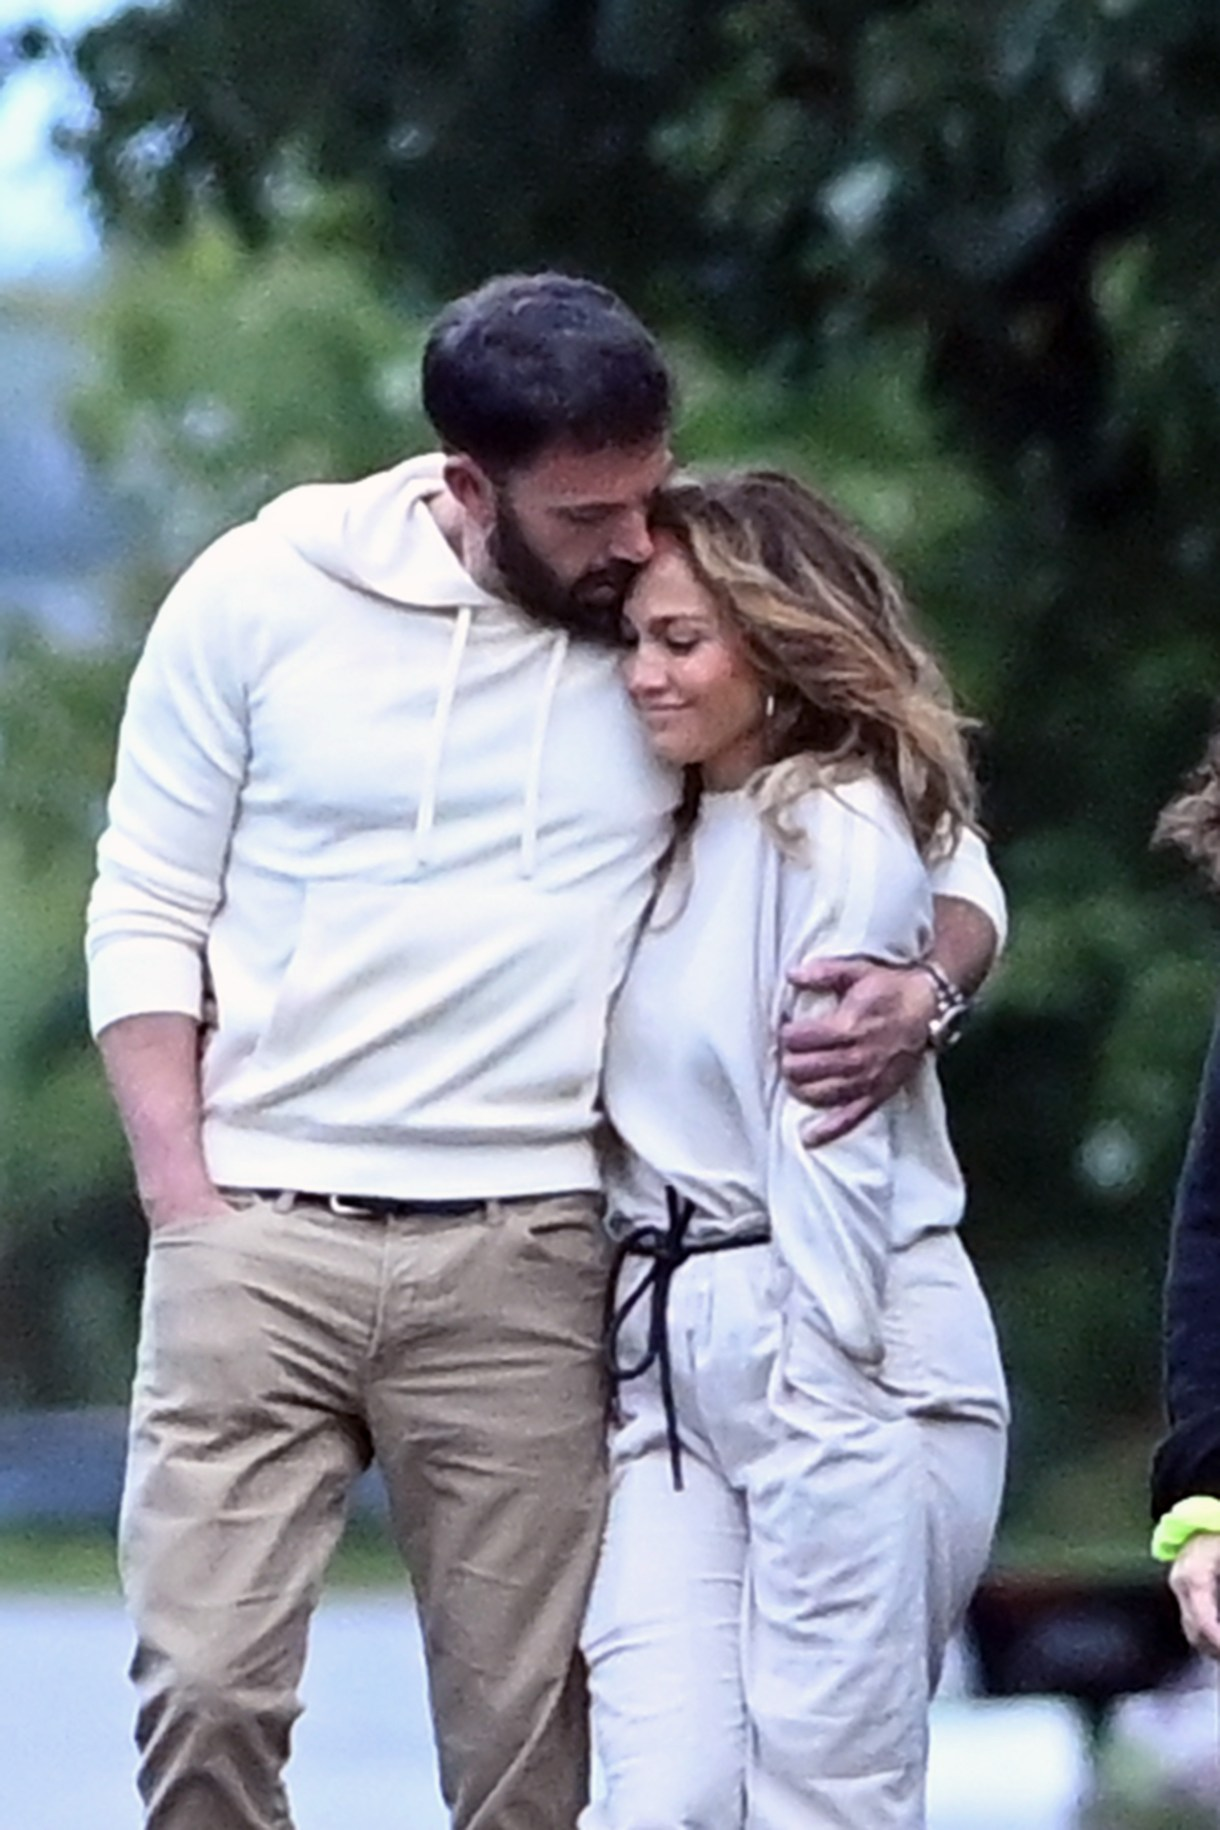 Jlo and Ben Affleck fall in love at The Hamptons and continue their romance  as they hope to get married this year – Bolivia News